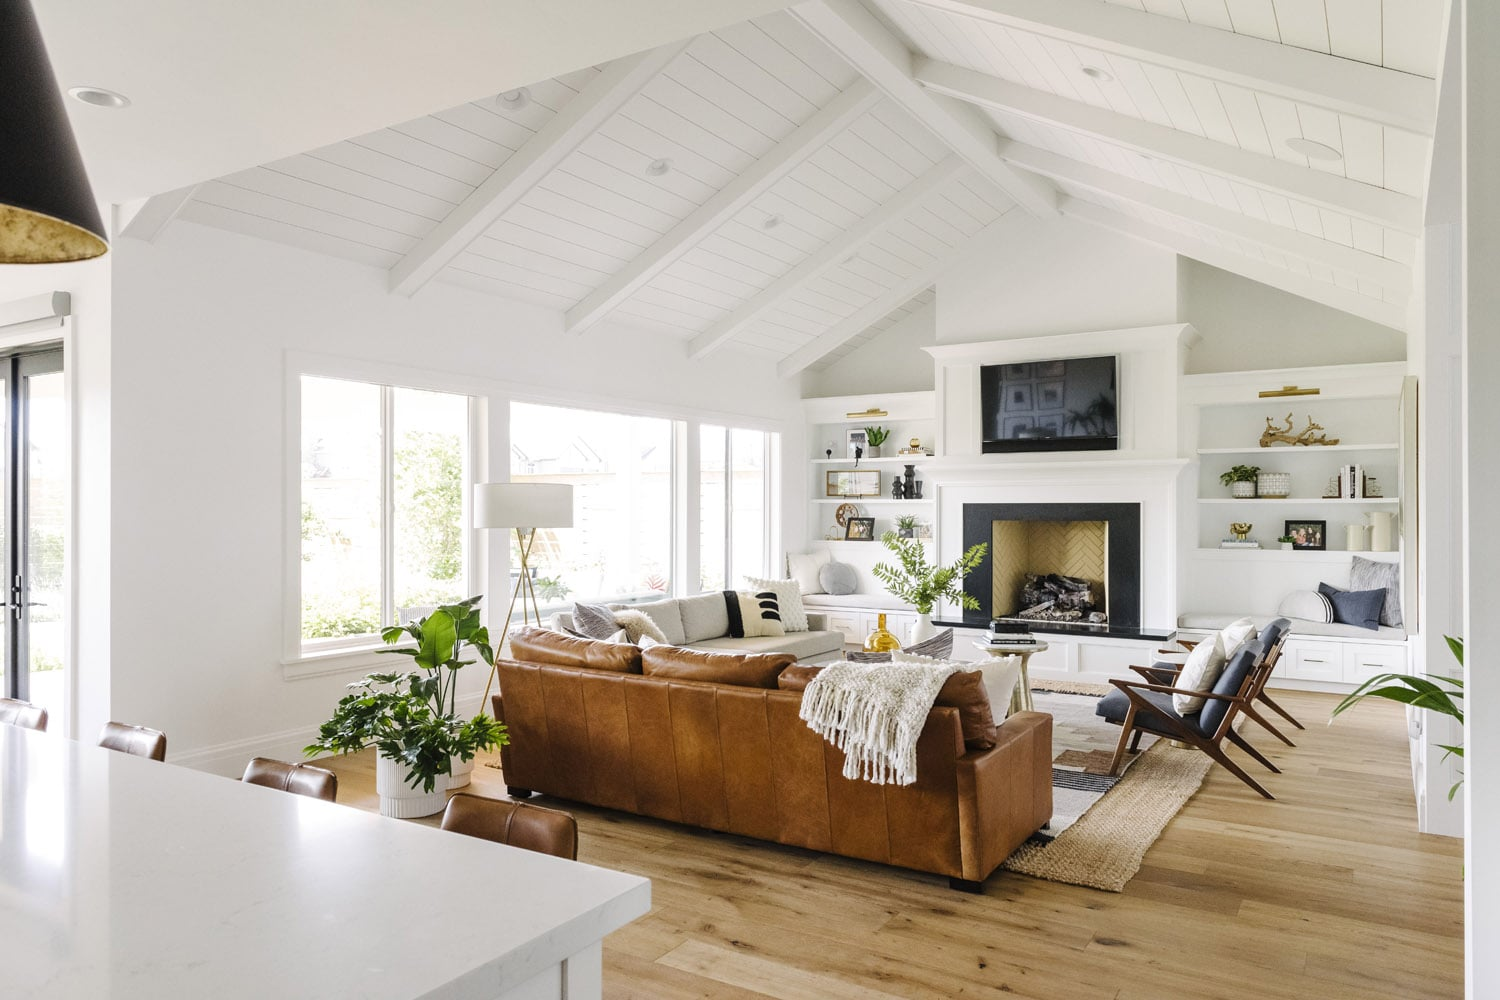 How To Get The Modern Farmhouse Look Modsy Blog